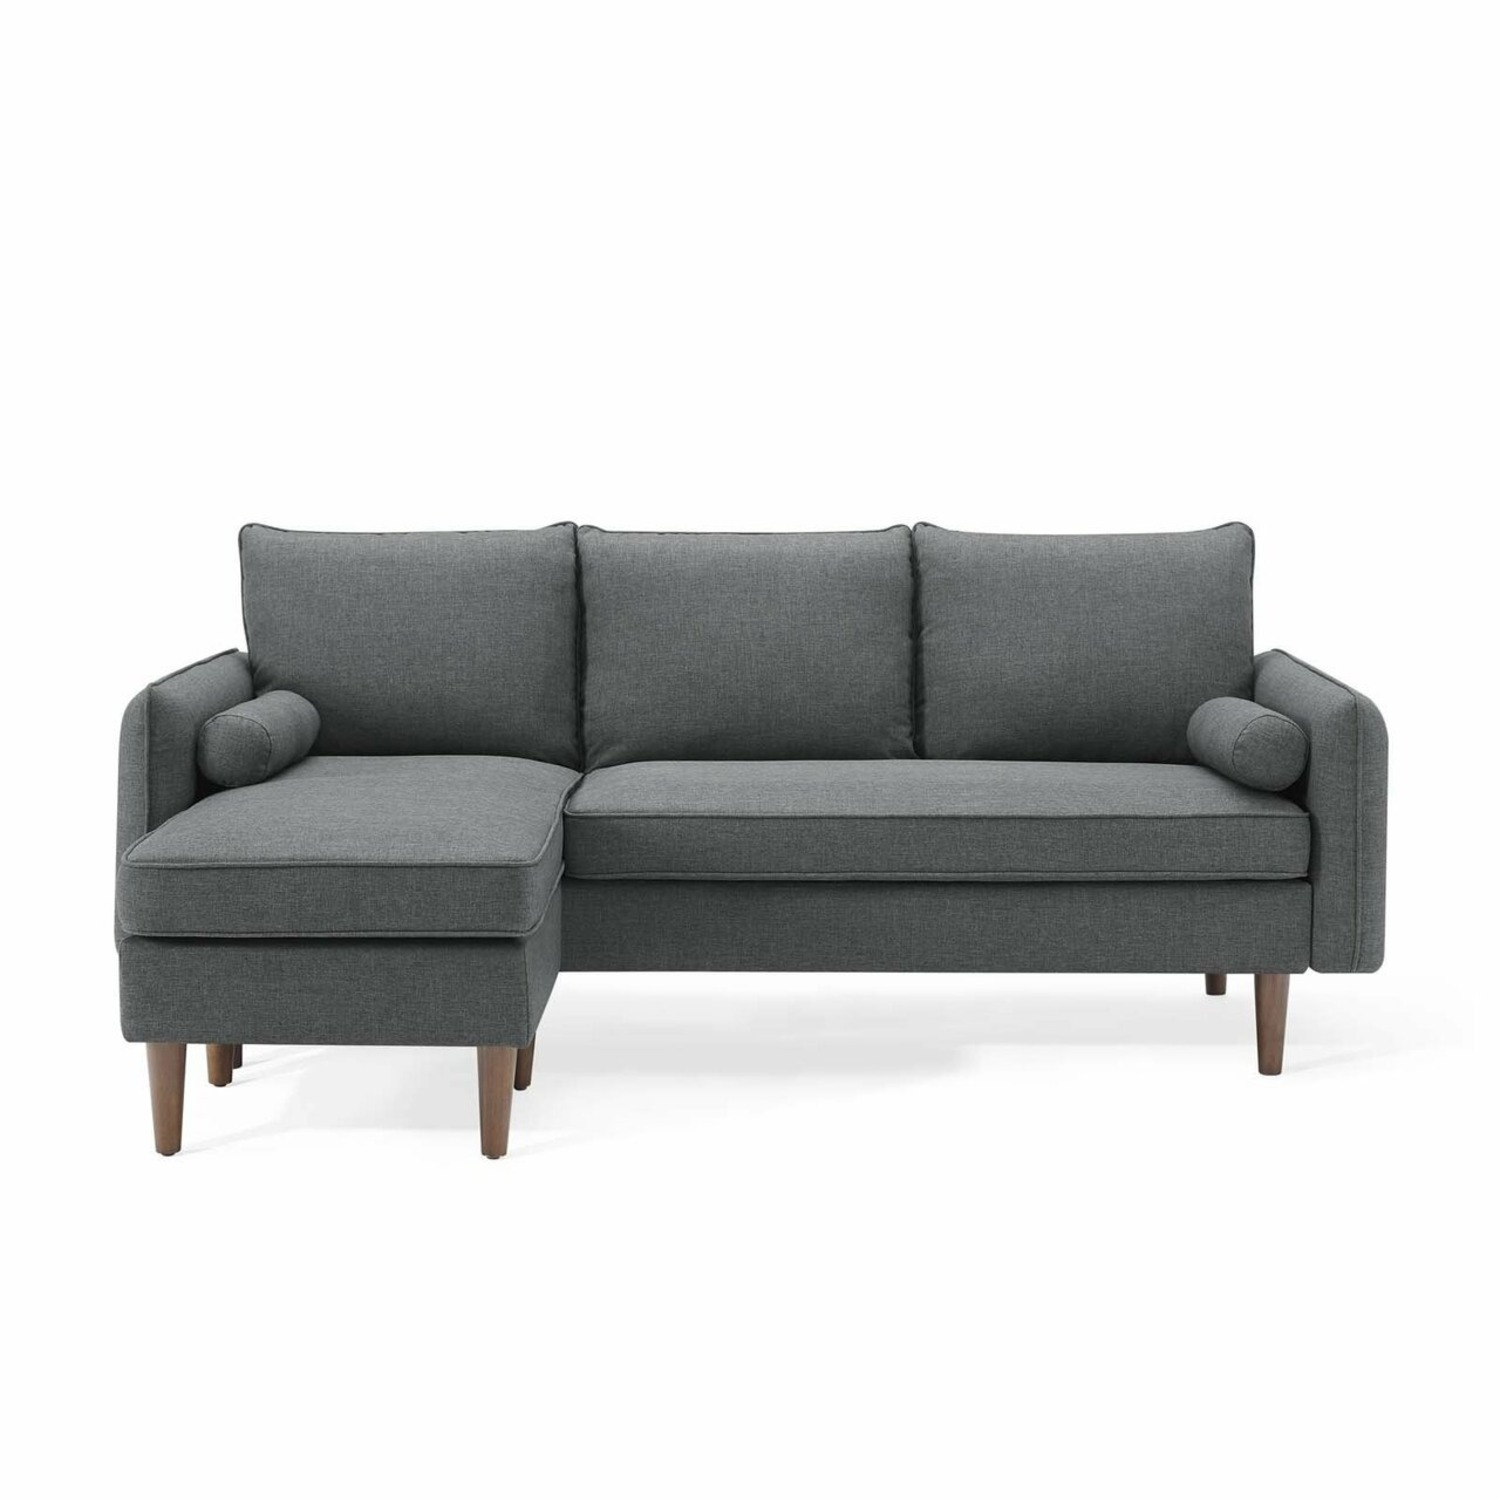 2-Piece Sectional Sofa In Gray Upholstery Finish - image-2